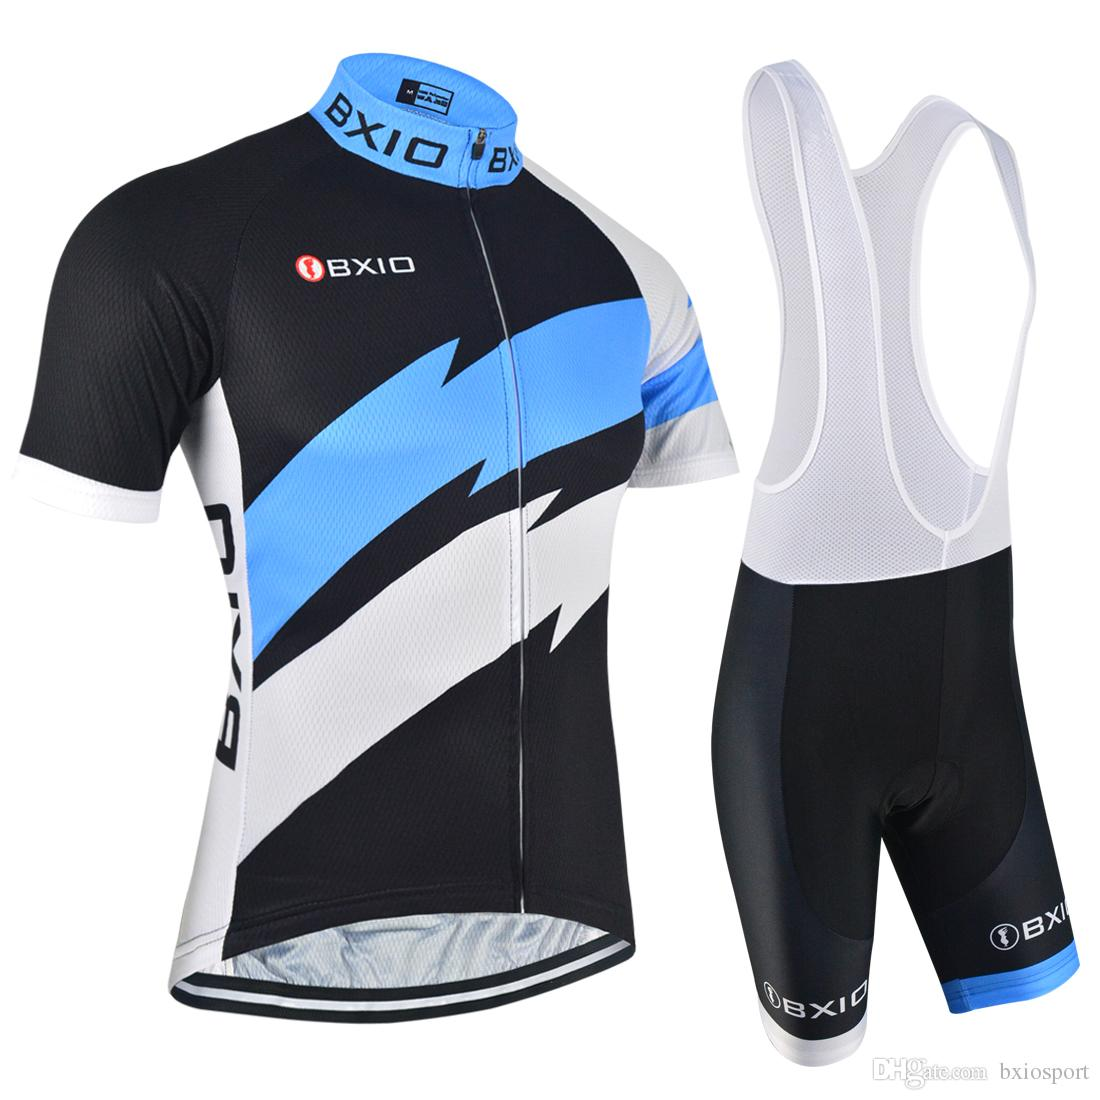 bc1a50018 2017 Men Cycling Jerseys Sets BXIO Brand New Arrival Bikes Clothes Fashion  Summer Short Sleeve Cycle Clothing Ropa Ciclismo BX-146 Cycling Jerseys Sets  ...